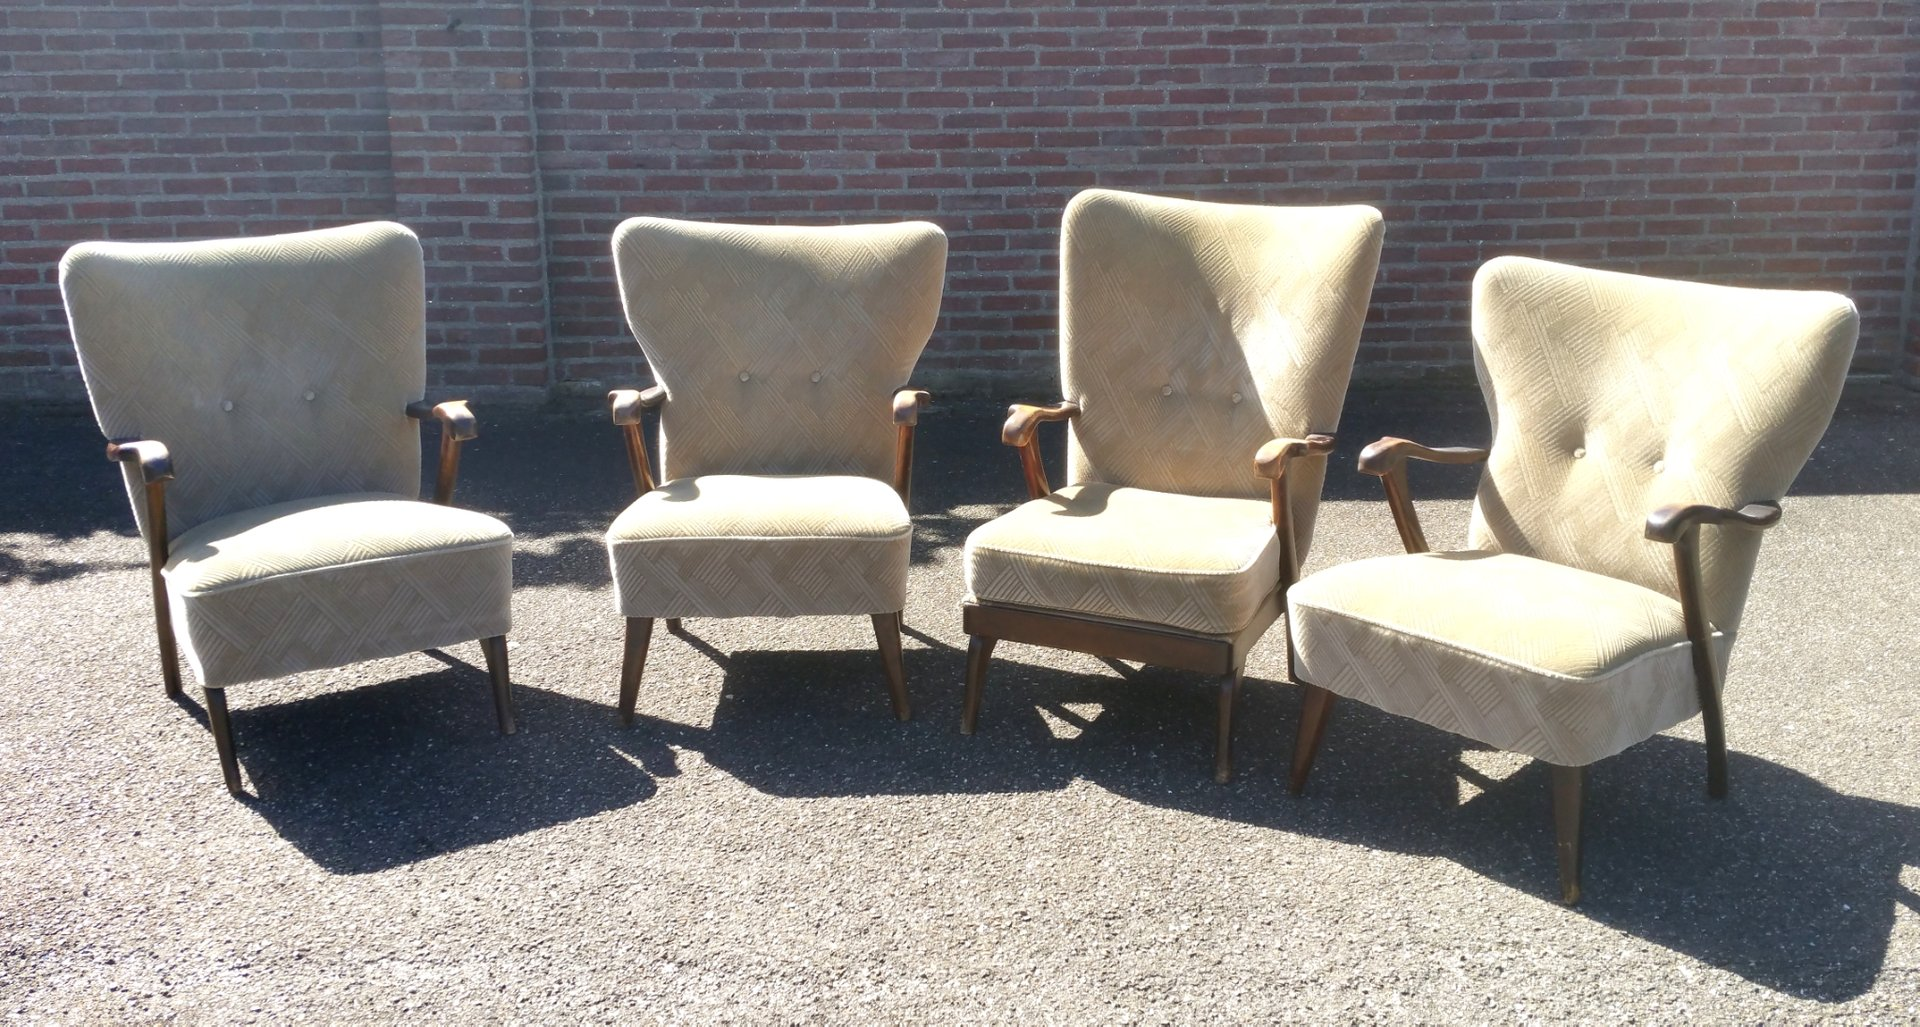 midcentury lounge chairs by aa patijn for zijlstra joure set of 4 - Mid Century Lounge Chair